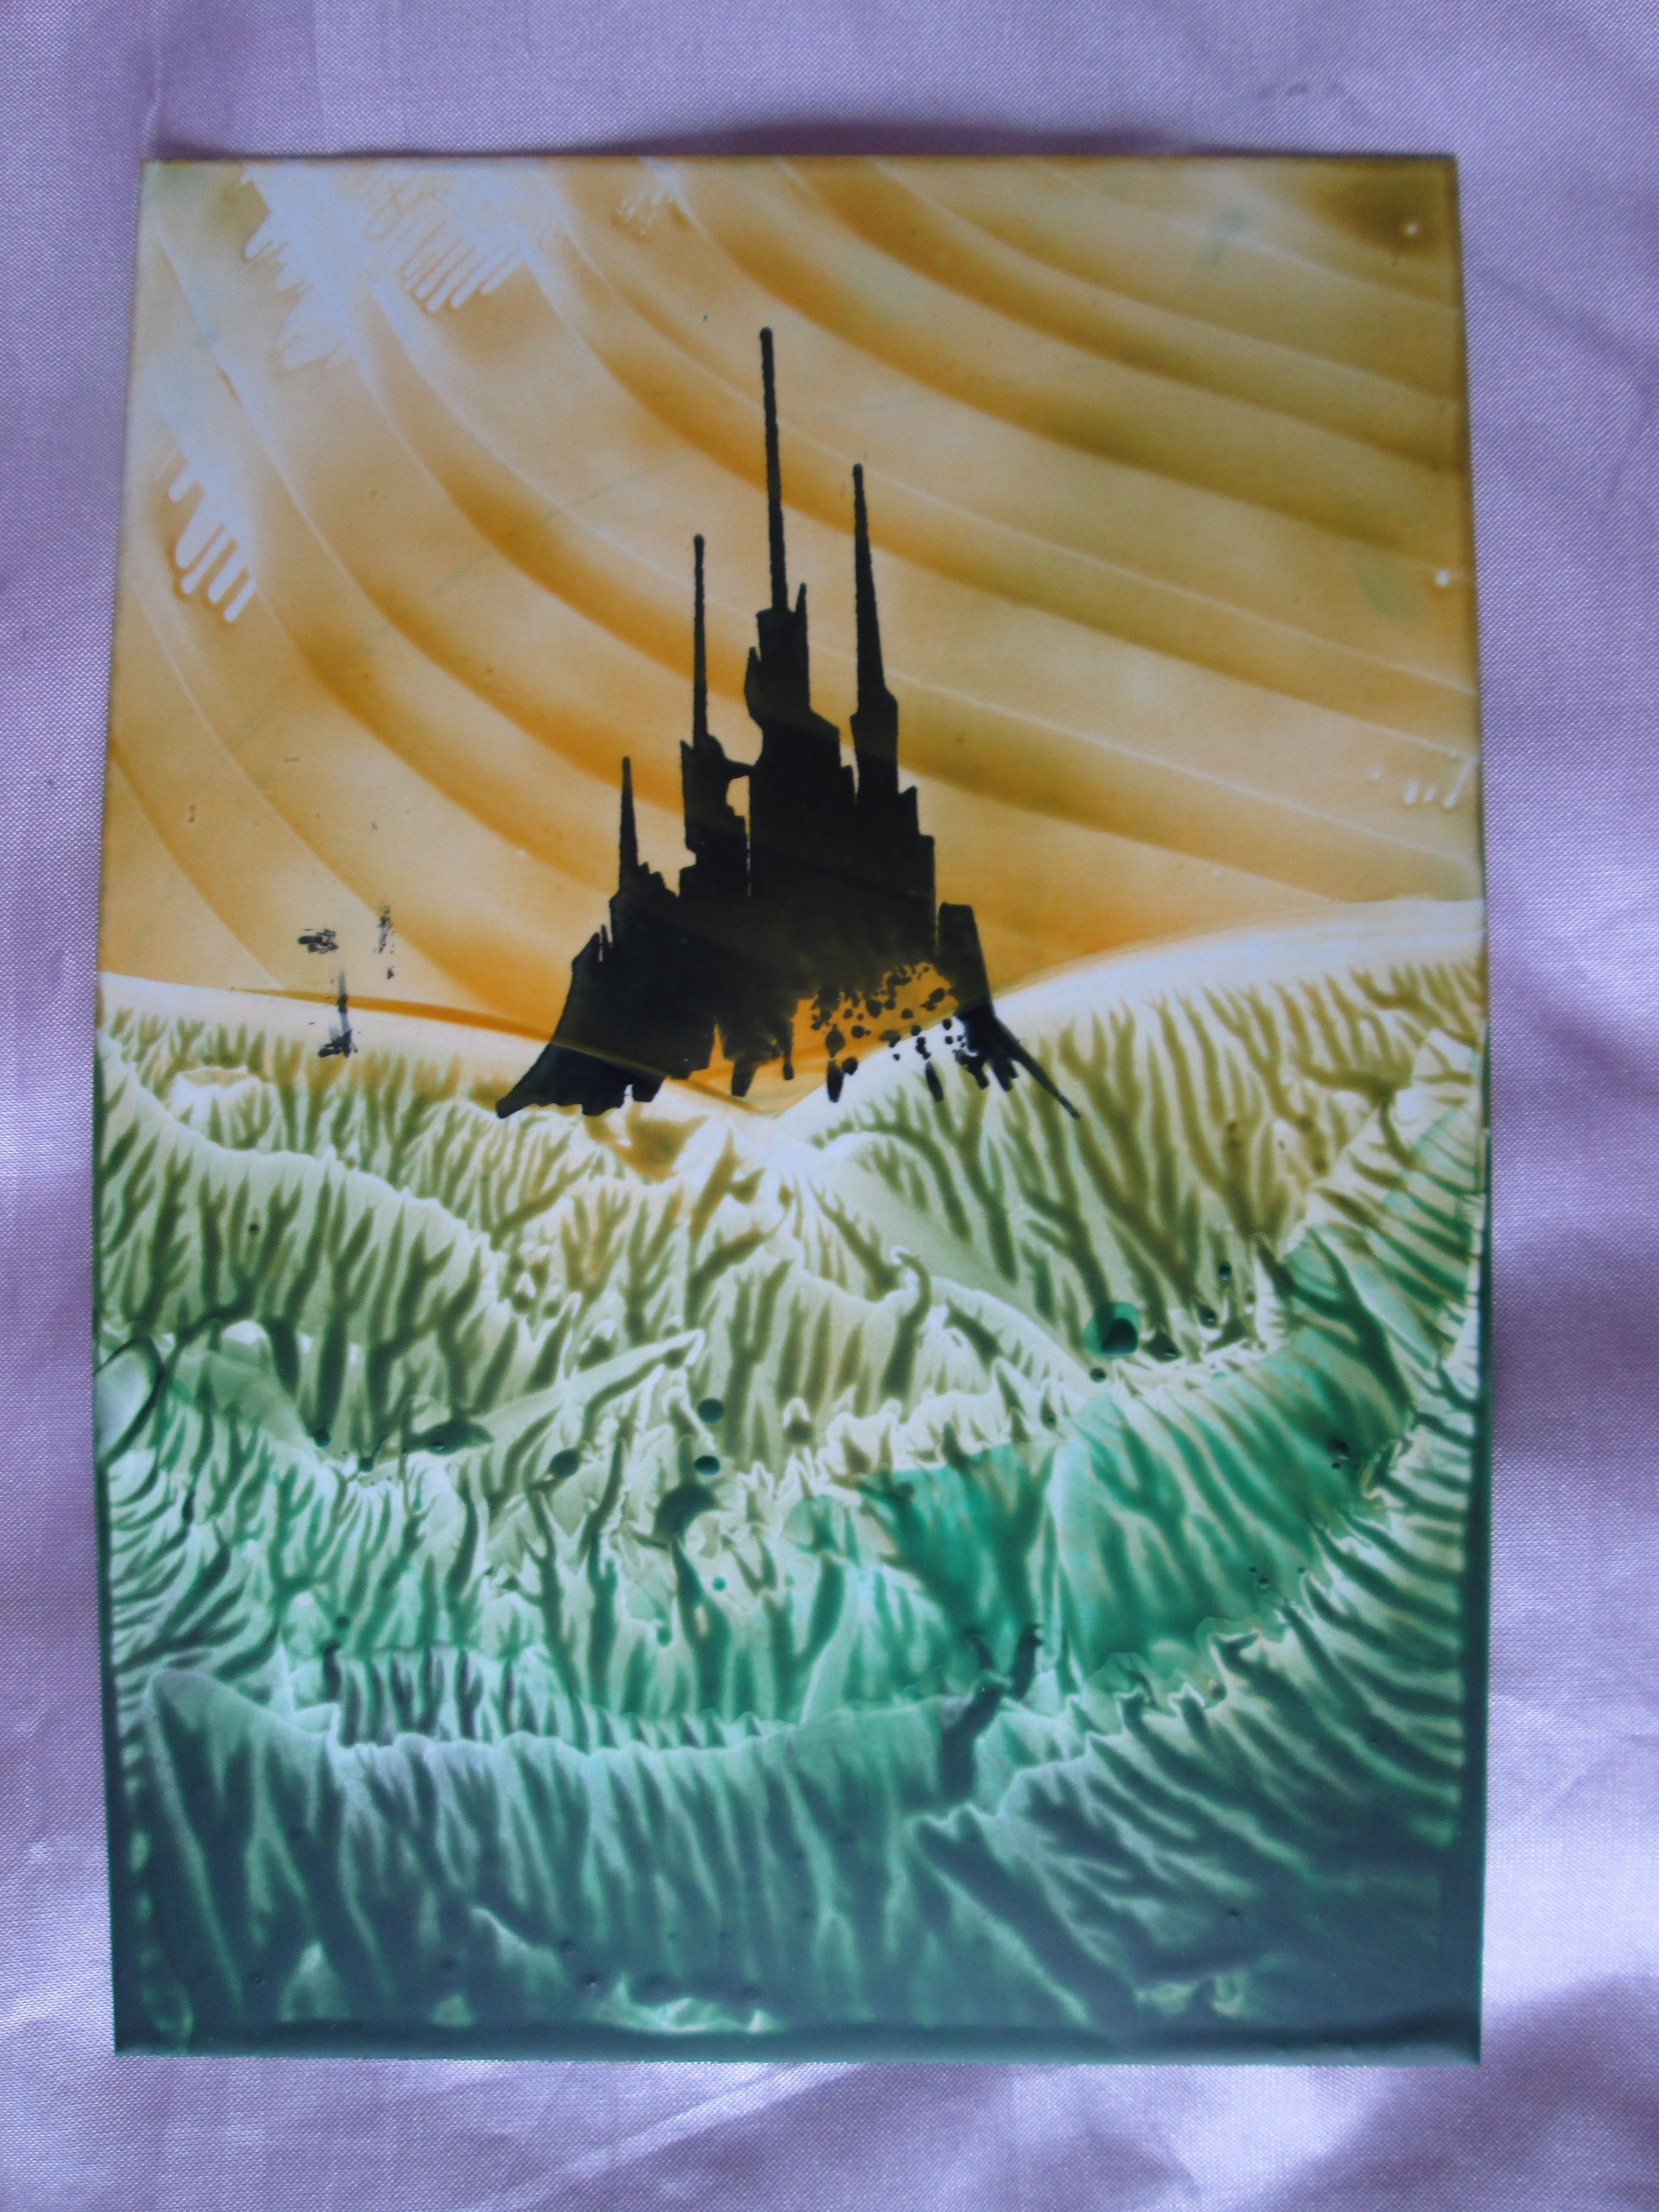 Encaustic wax art painting of a landscape with a castle. I used an ink stamper to create the castle silhoutte and then layered over coloured beeswax with a small flat iron. To see this on my etsy account visit:  https://www.etsy.com/uk/shop/GemmasFantasyCrafts?section_id=17678655&ref=shopsection_leftnav_1